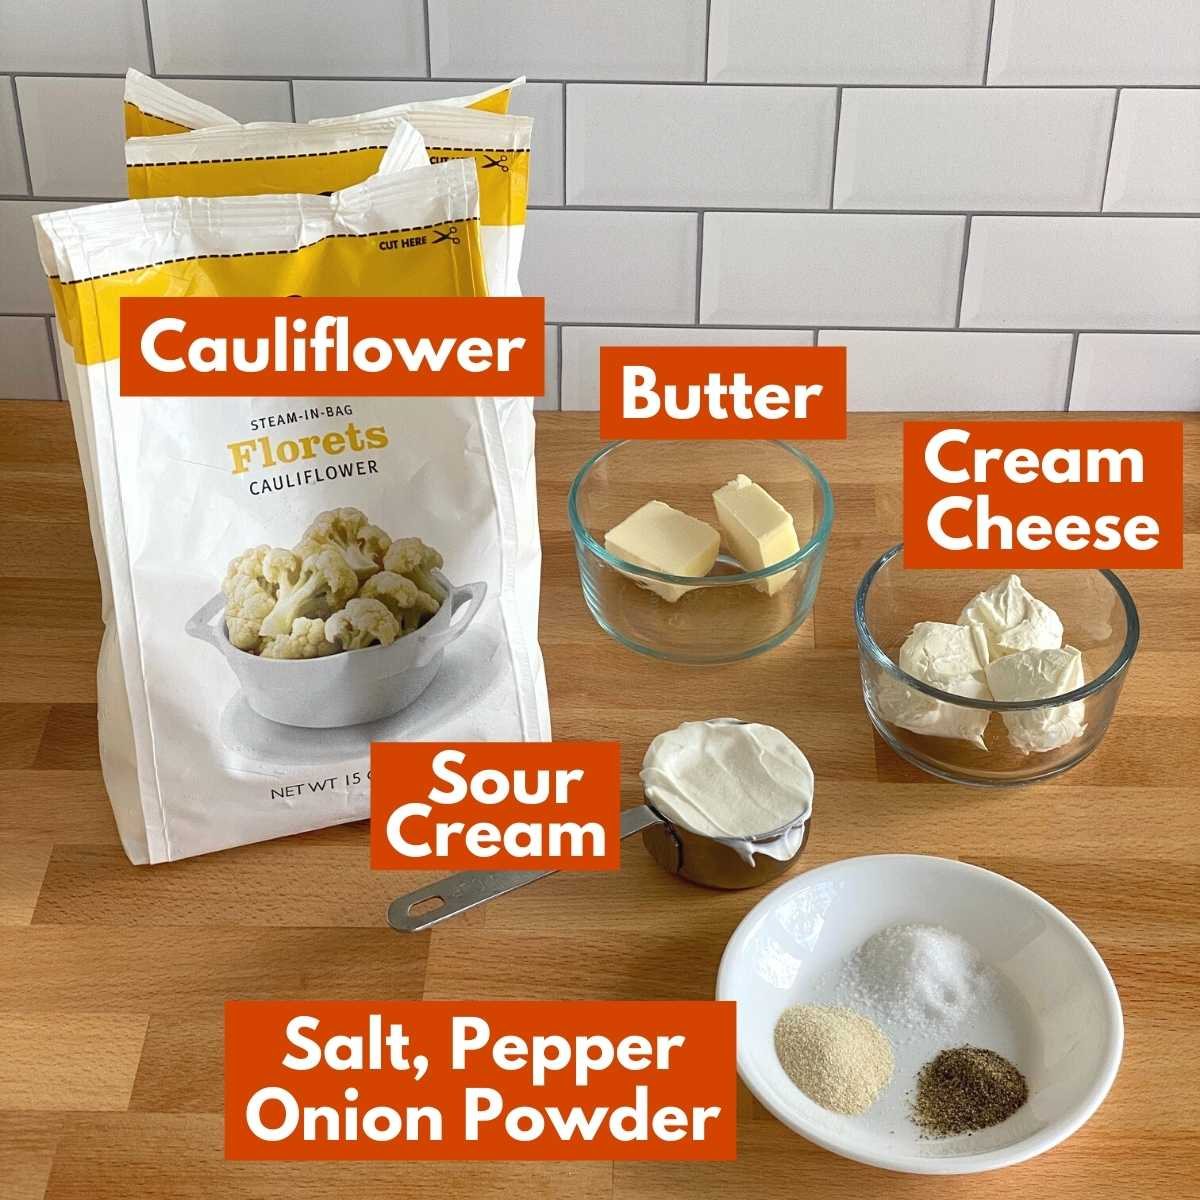 Graphic of ingredients to make recipe with labels.